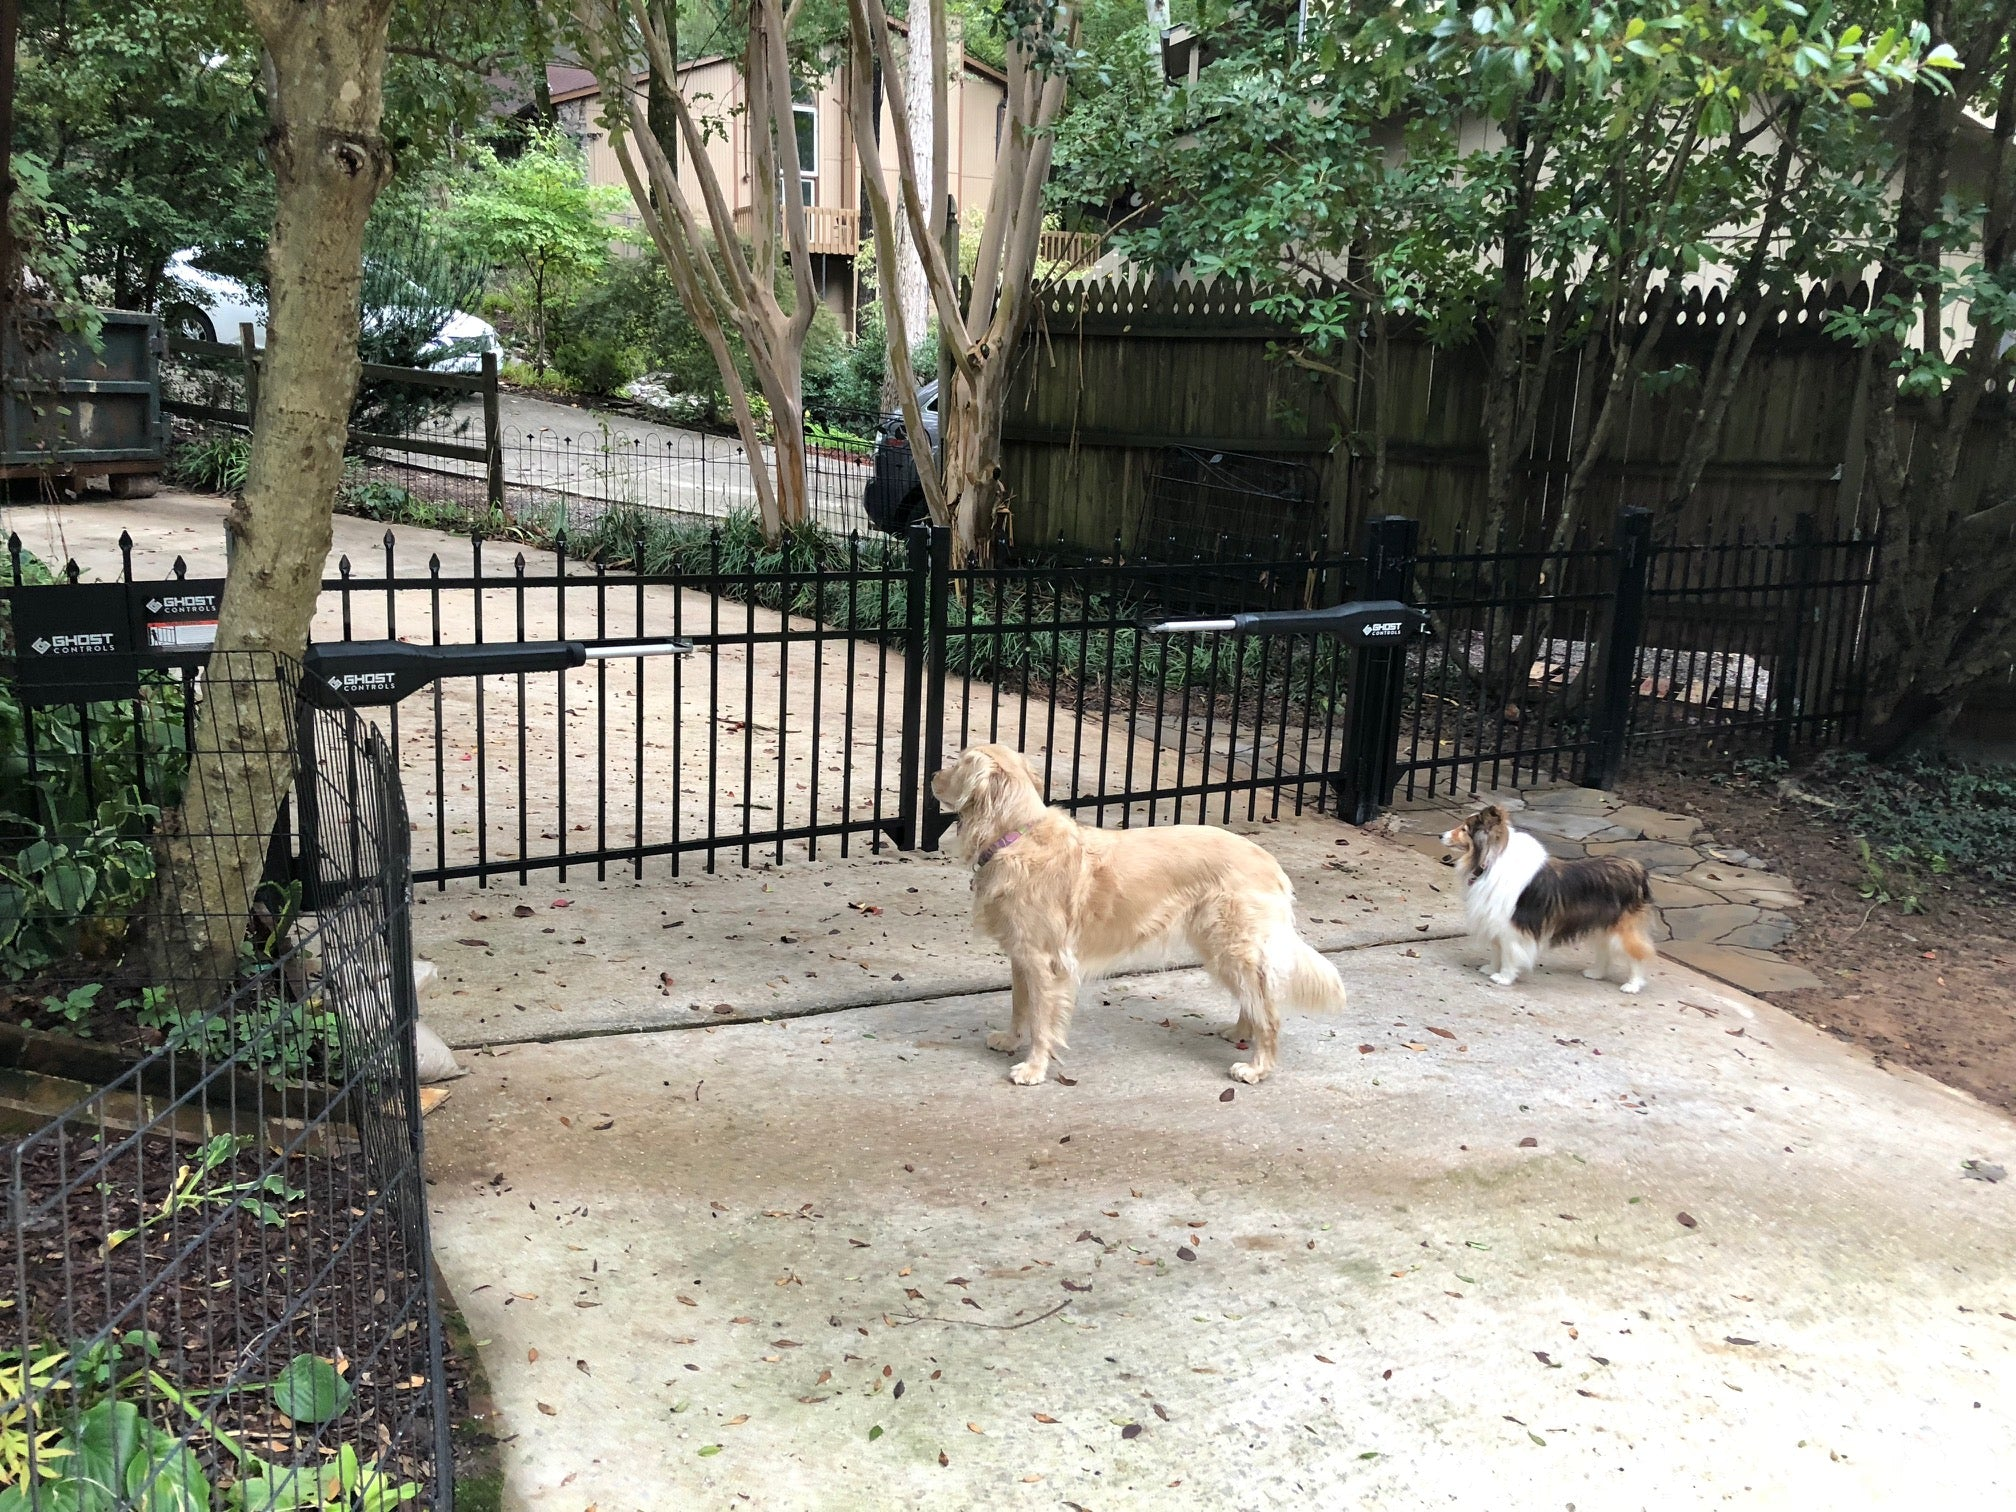 TDS2 on Gate with Dogs